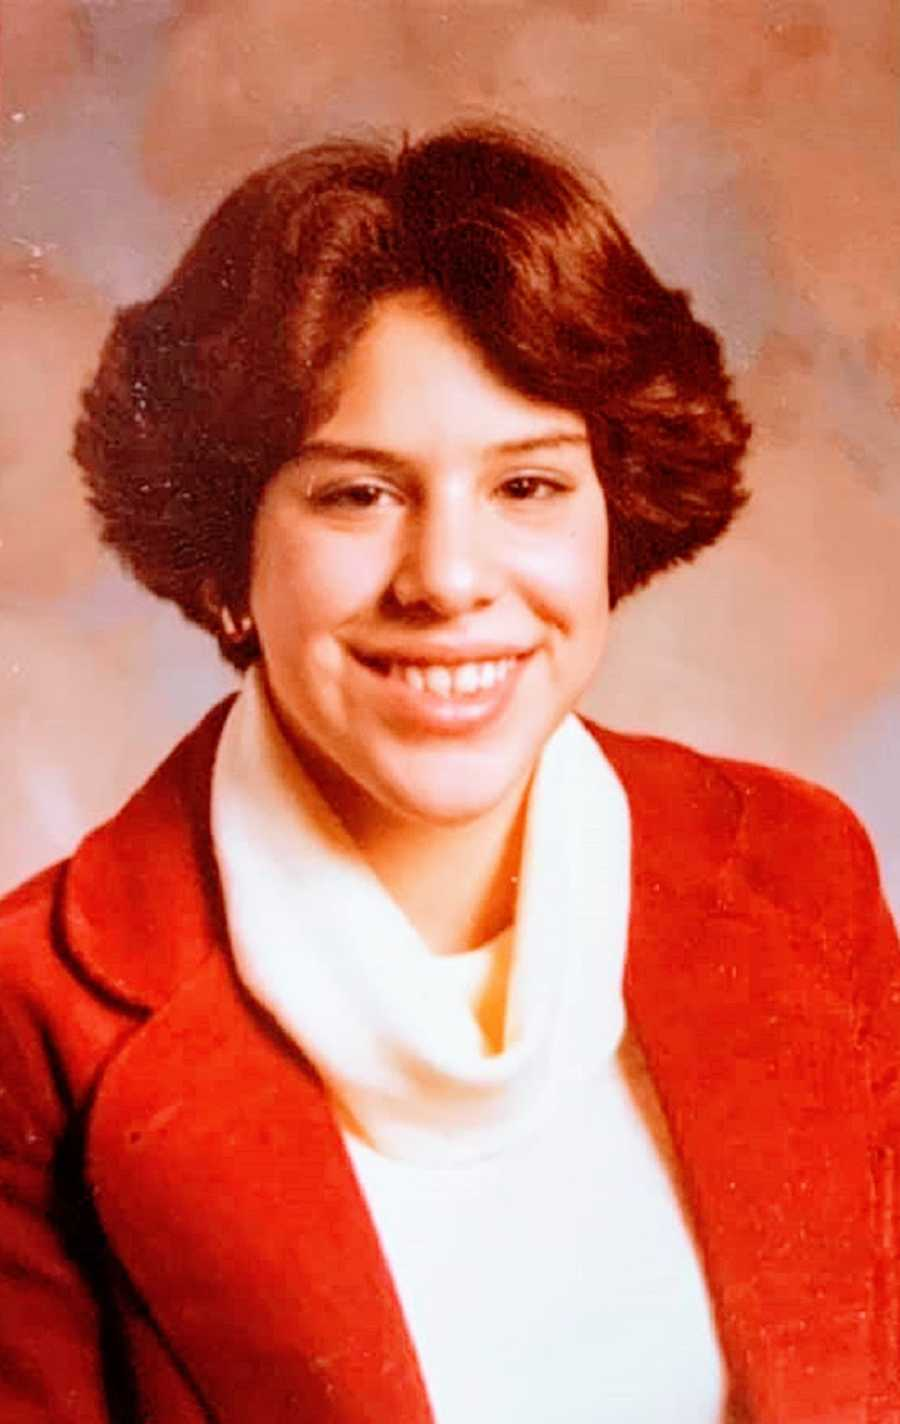 A young woman wearing a red jacket and a turtleneck